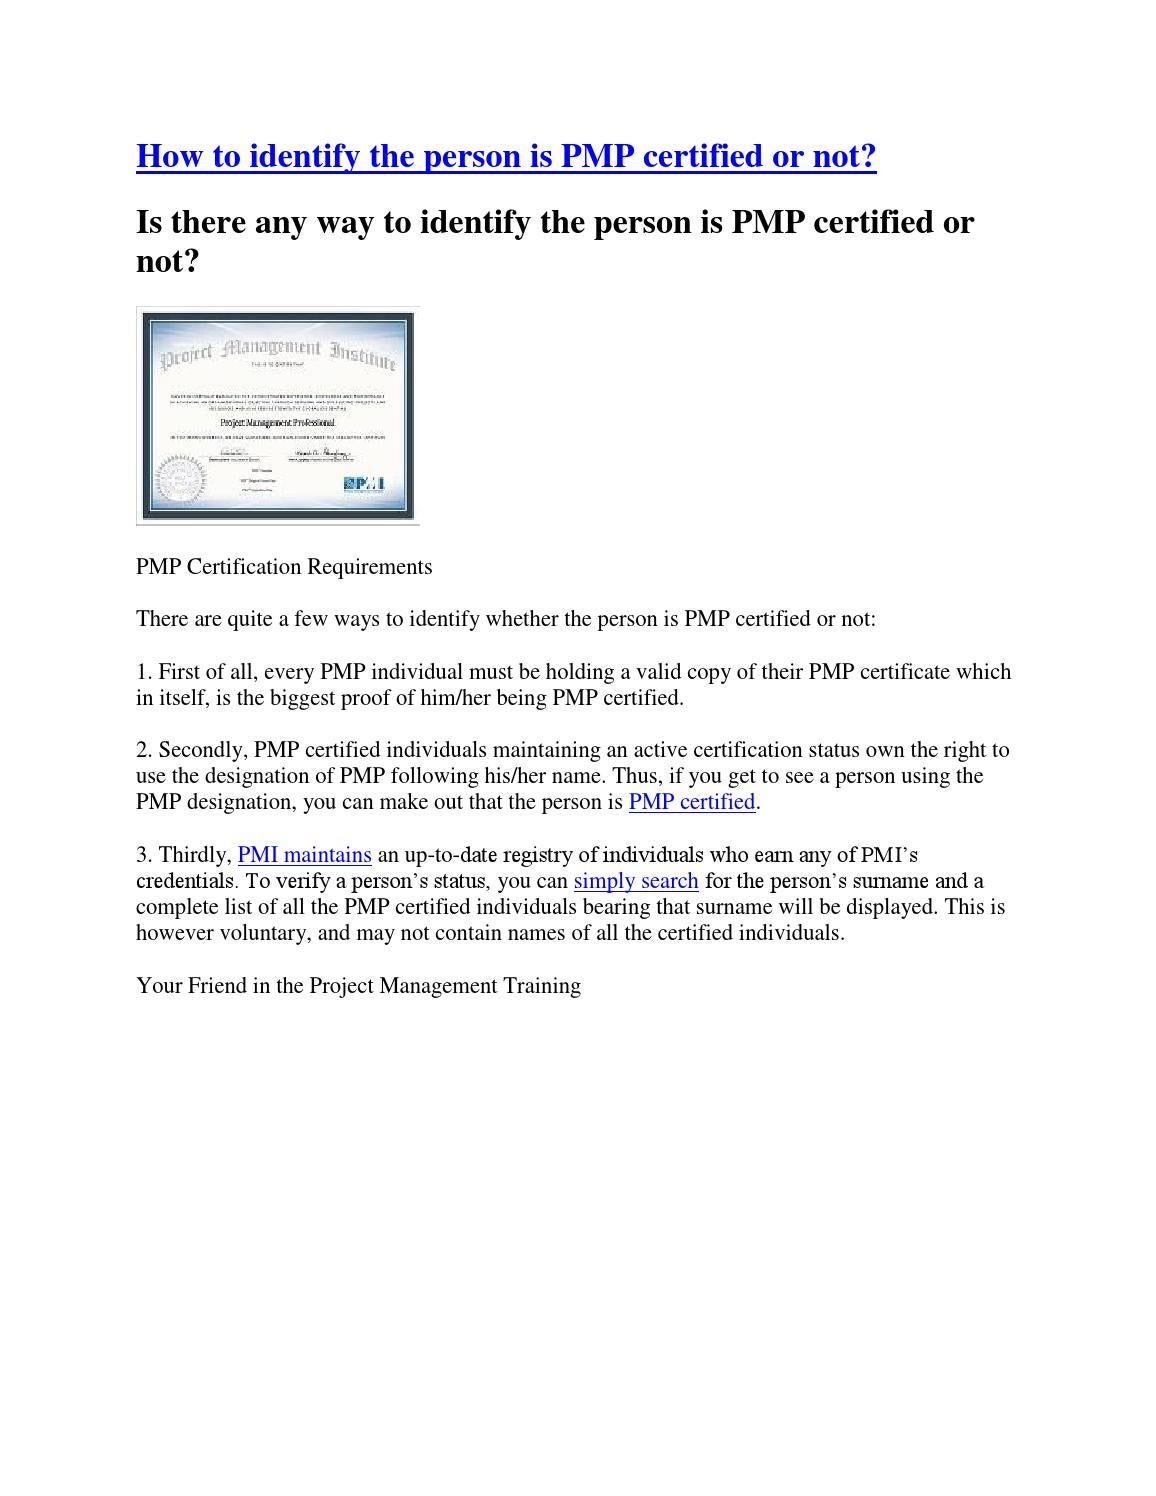 How to identify the person is pmp certified or not by pm higher how to identify the person is pmp certified or not by pm higher issuu 1betcityfo Choice Image